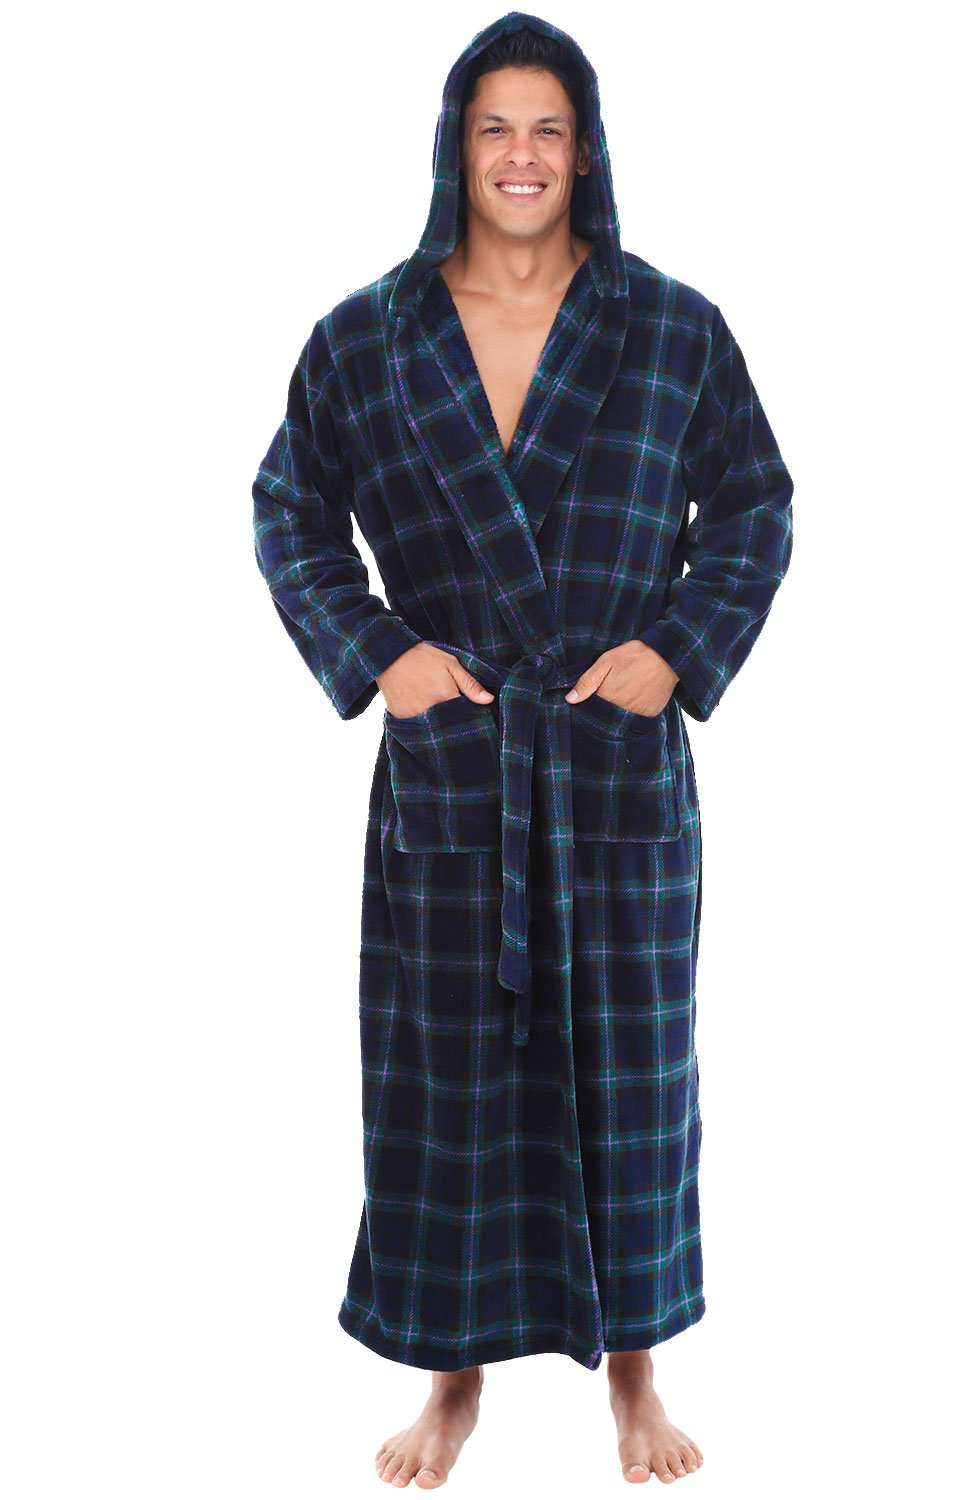 Galleon - Alexander Del Rossa Mens Fleece Robe 17c483aae